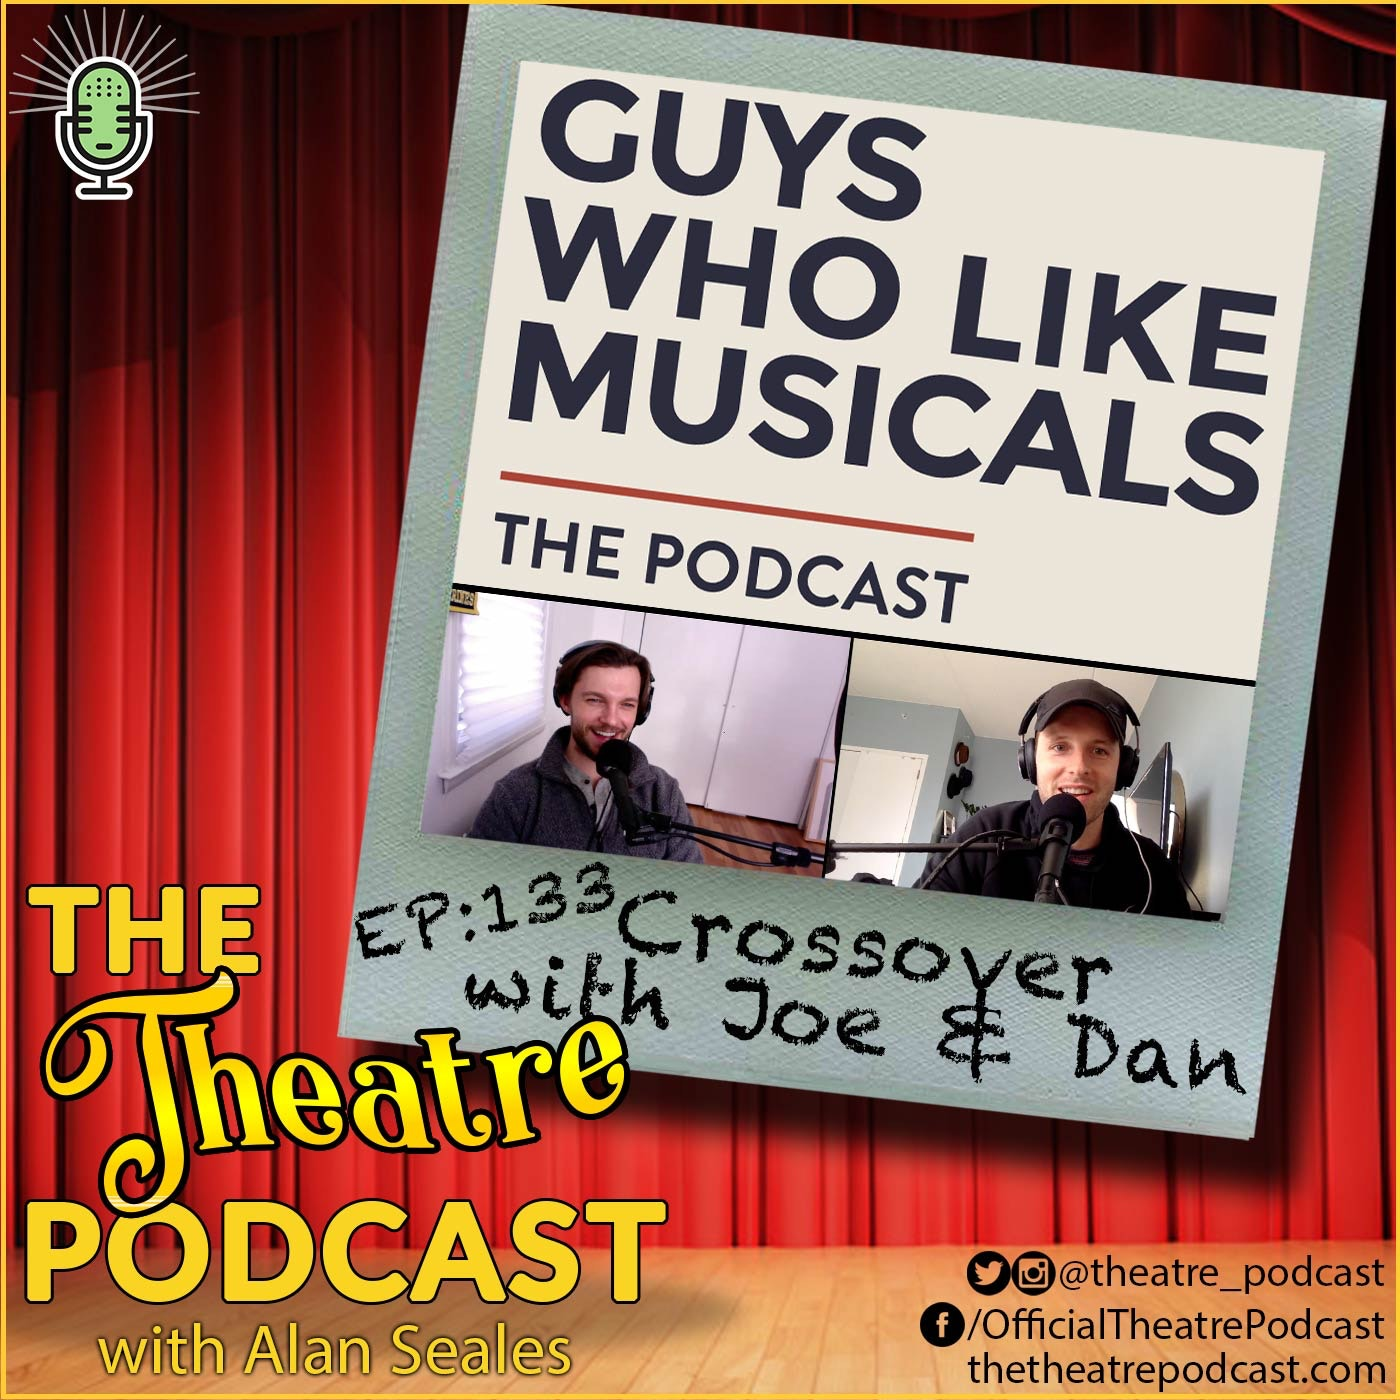 Ep133 - Guys Who Like Musicals Podcast: A Special Crossover with Joe & Dan!